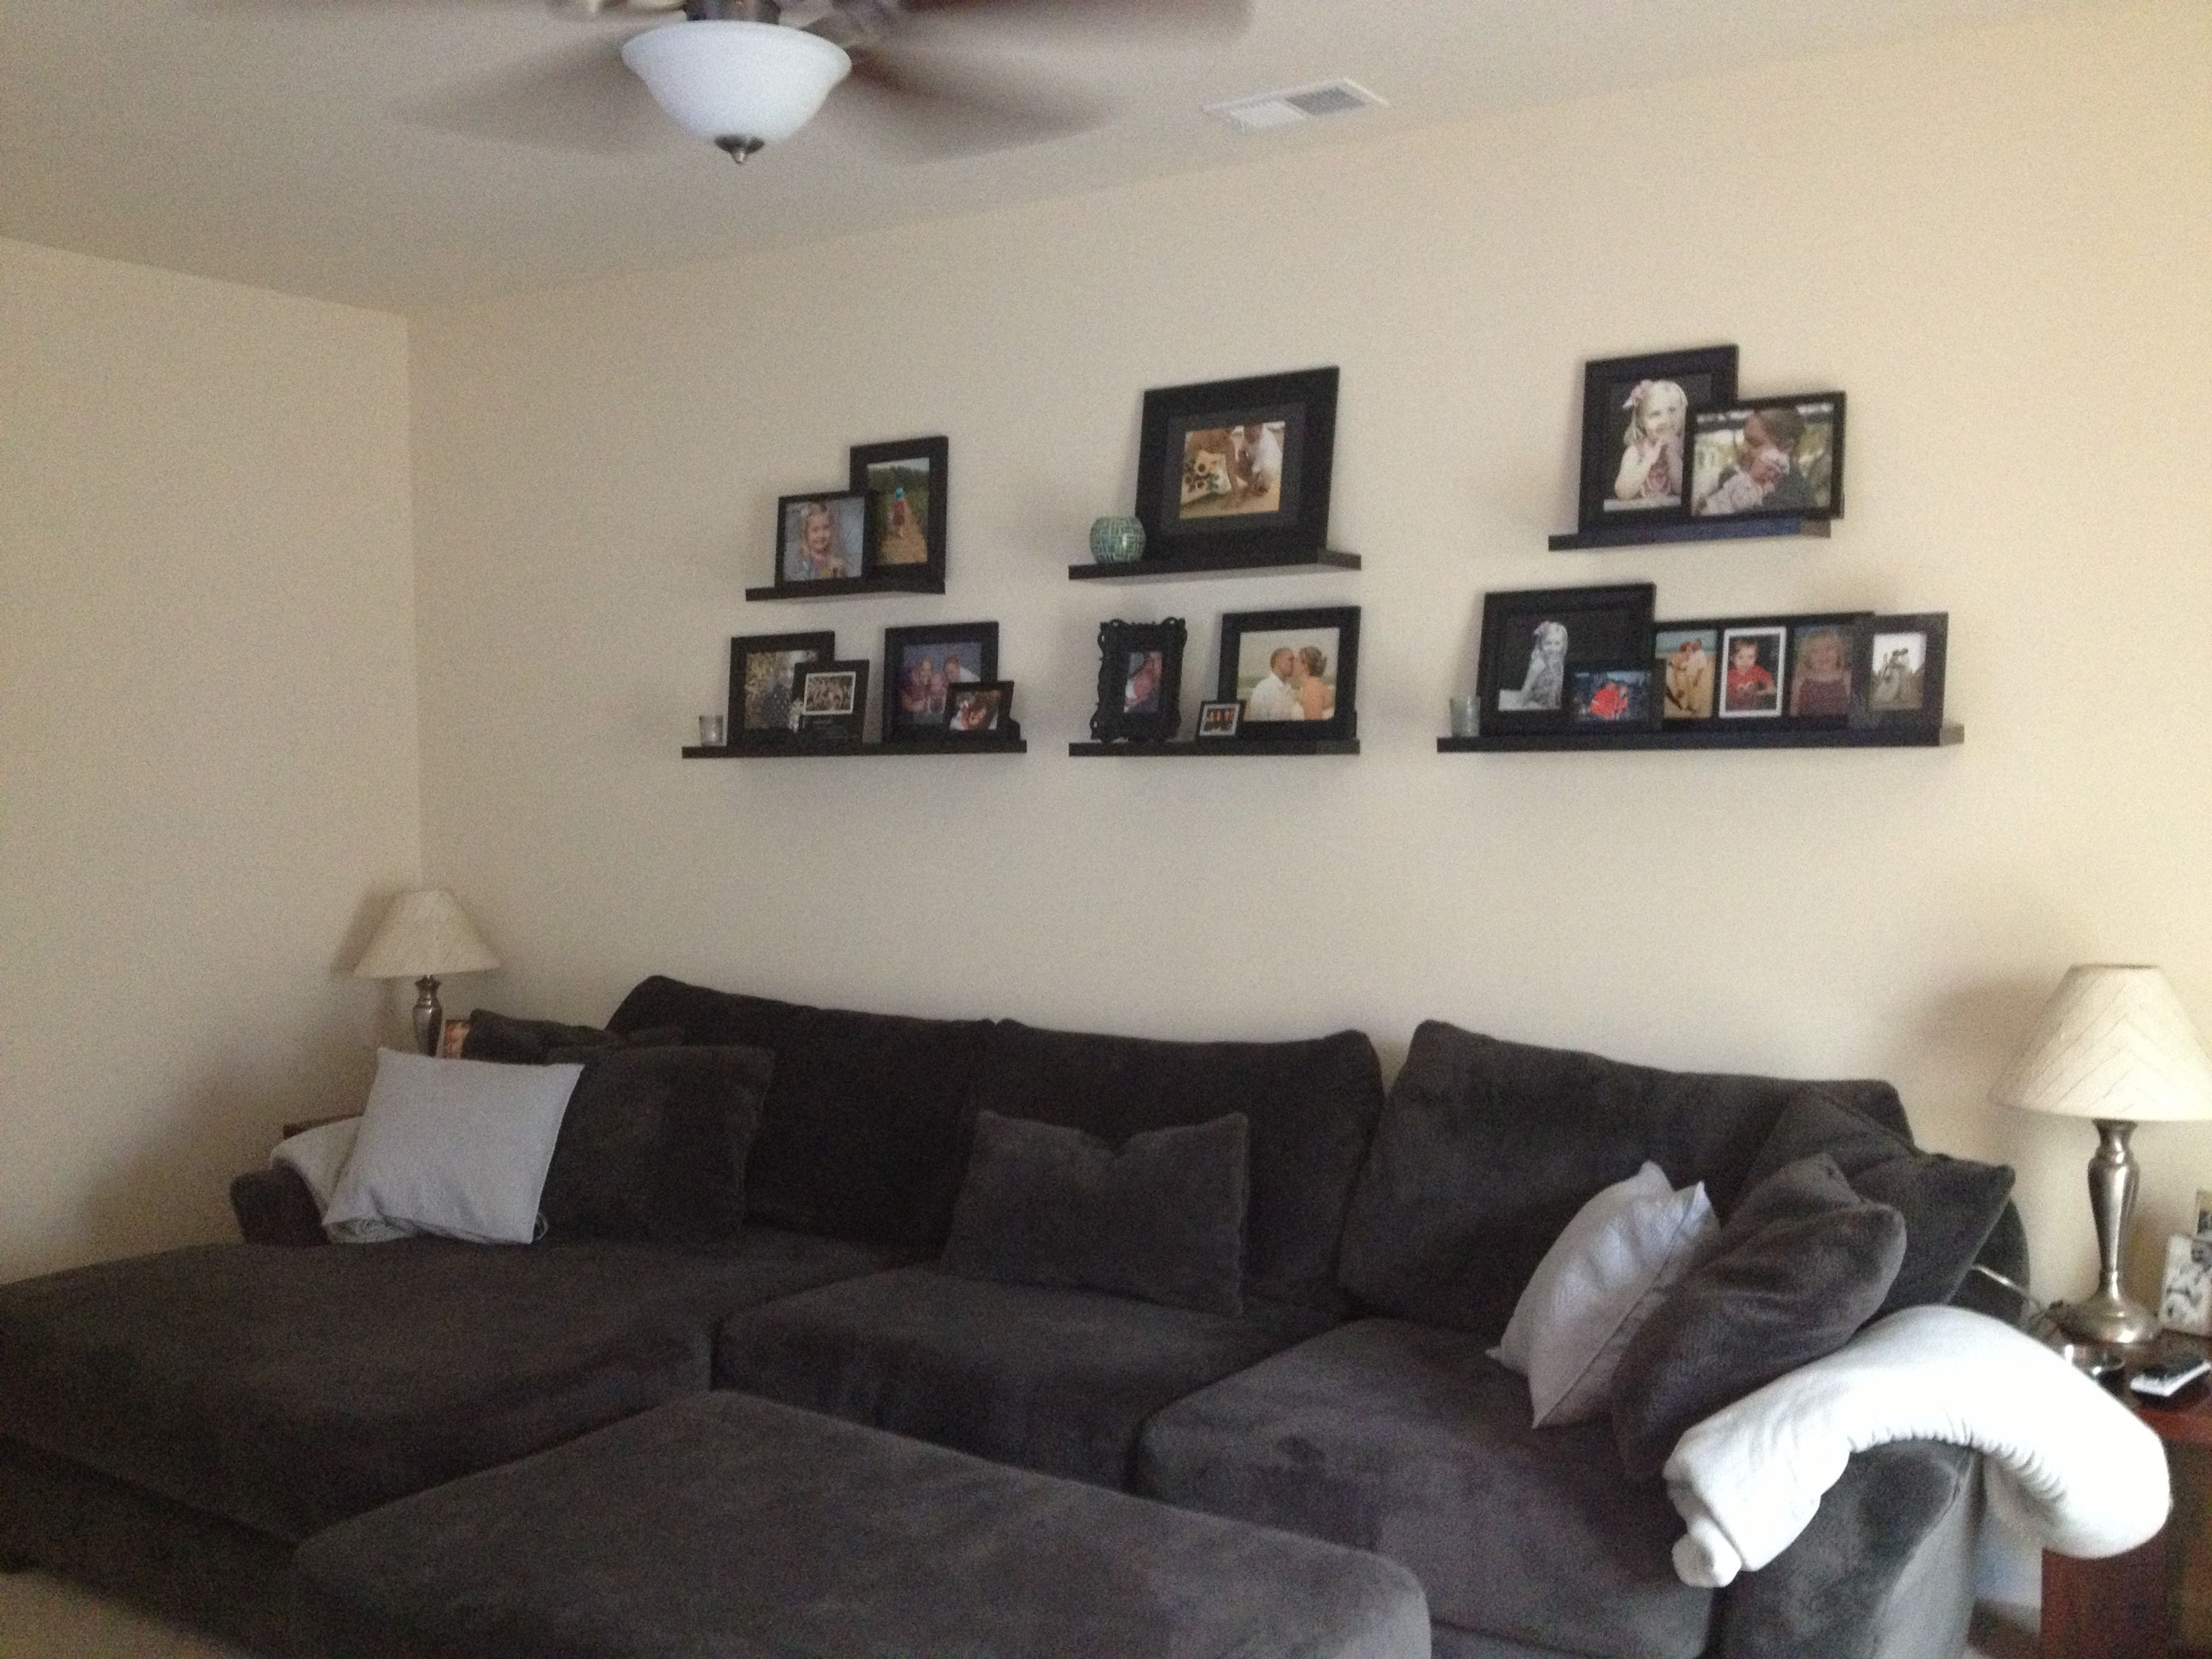 Photo gallery wall Shelves above couch Photo